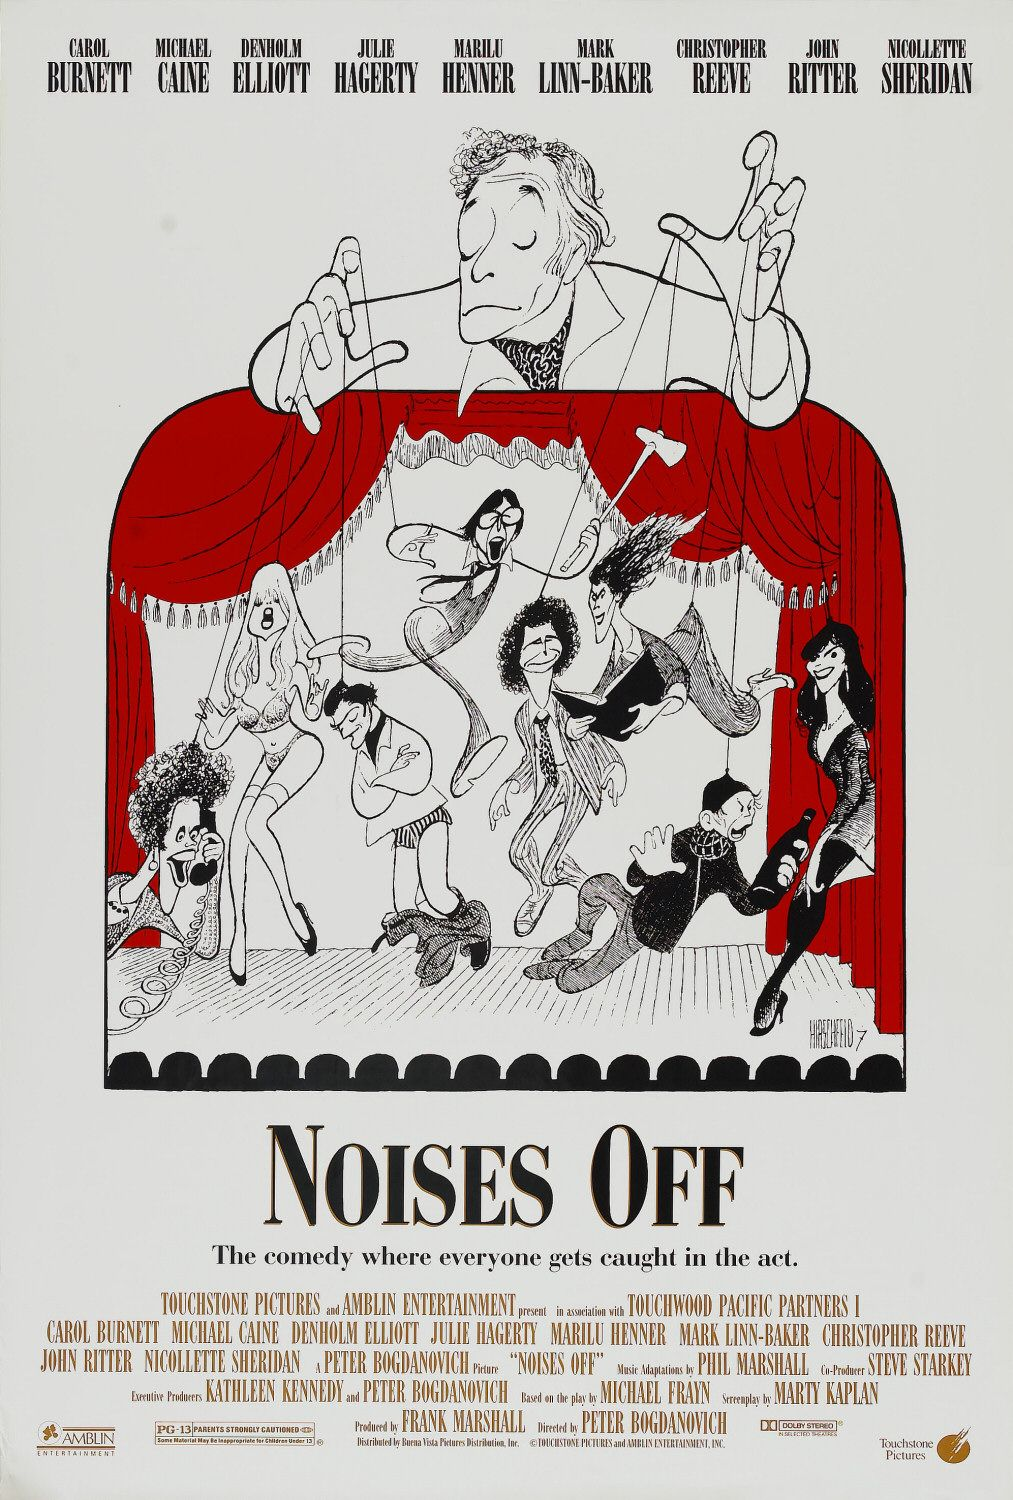 Affiche Poster bruits coulisses noises off disney touchstone